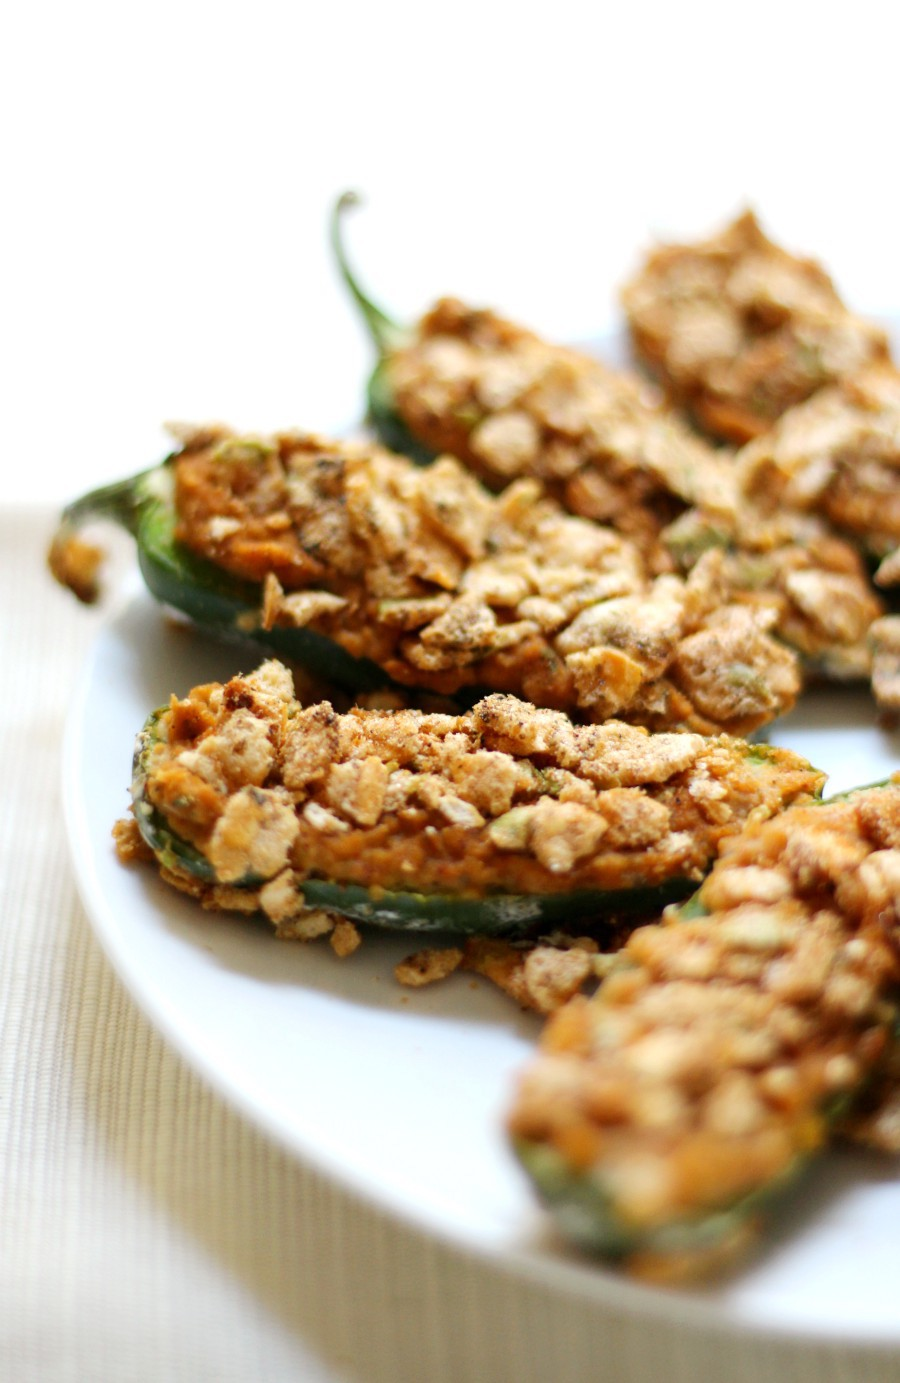 Gluten-Free Baked Jalapeño Poppers (Vegan, Allergy-Free) | Strength and Sunshine @RebeccaGF666 Your favorite spicy appetizer right got a healthy makeover! These Gluten-Free Baked Jalapeño Poppers are not only poppin', but vegan, top-8 allergy-free, and require no oil. Filled with a delicious creamy hummus and crusted for crunchy perfection, this recipe will be gone in a flash! #jalapeñopoppers #appetizer #vegan #glutenfree